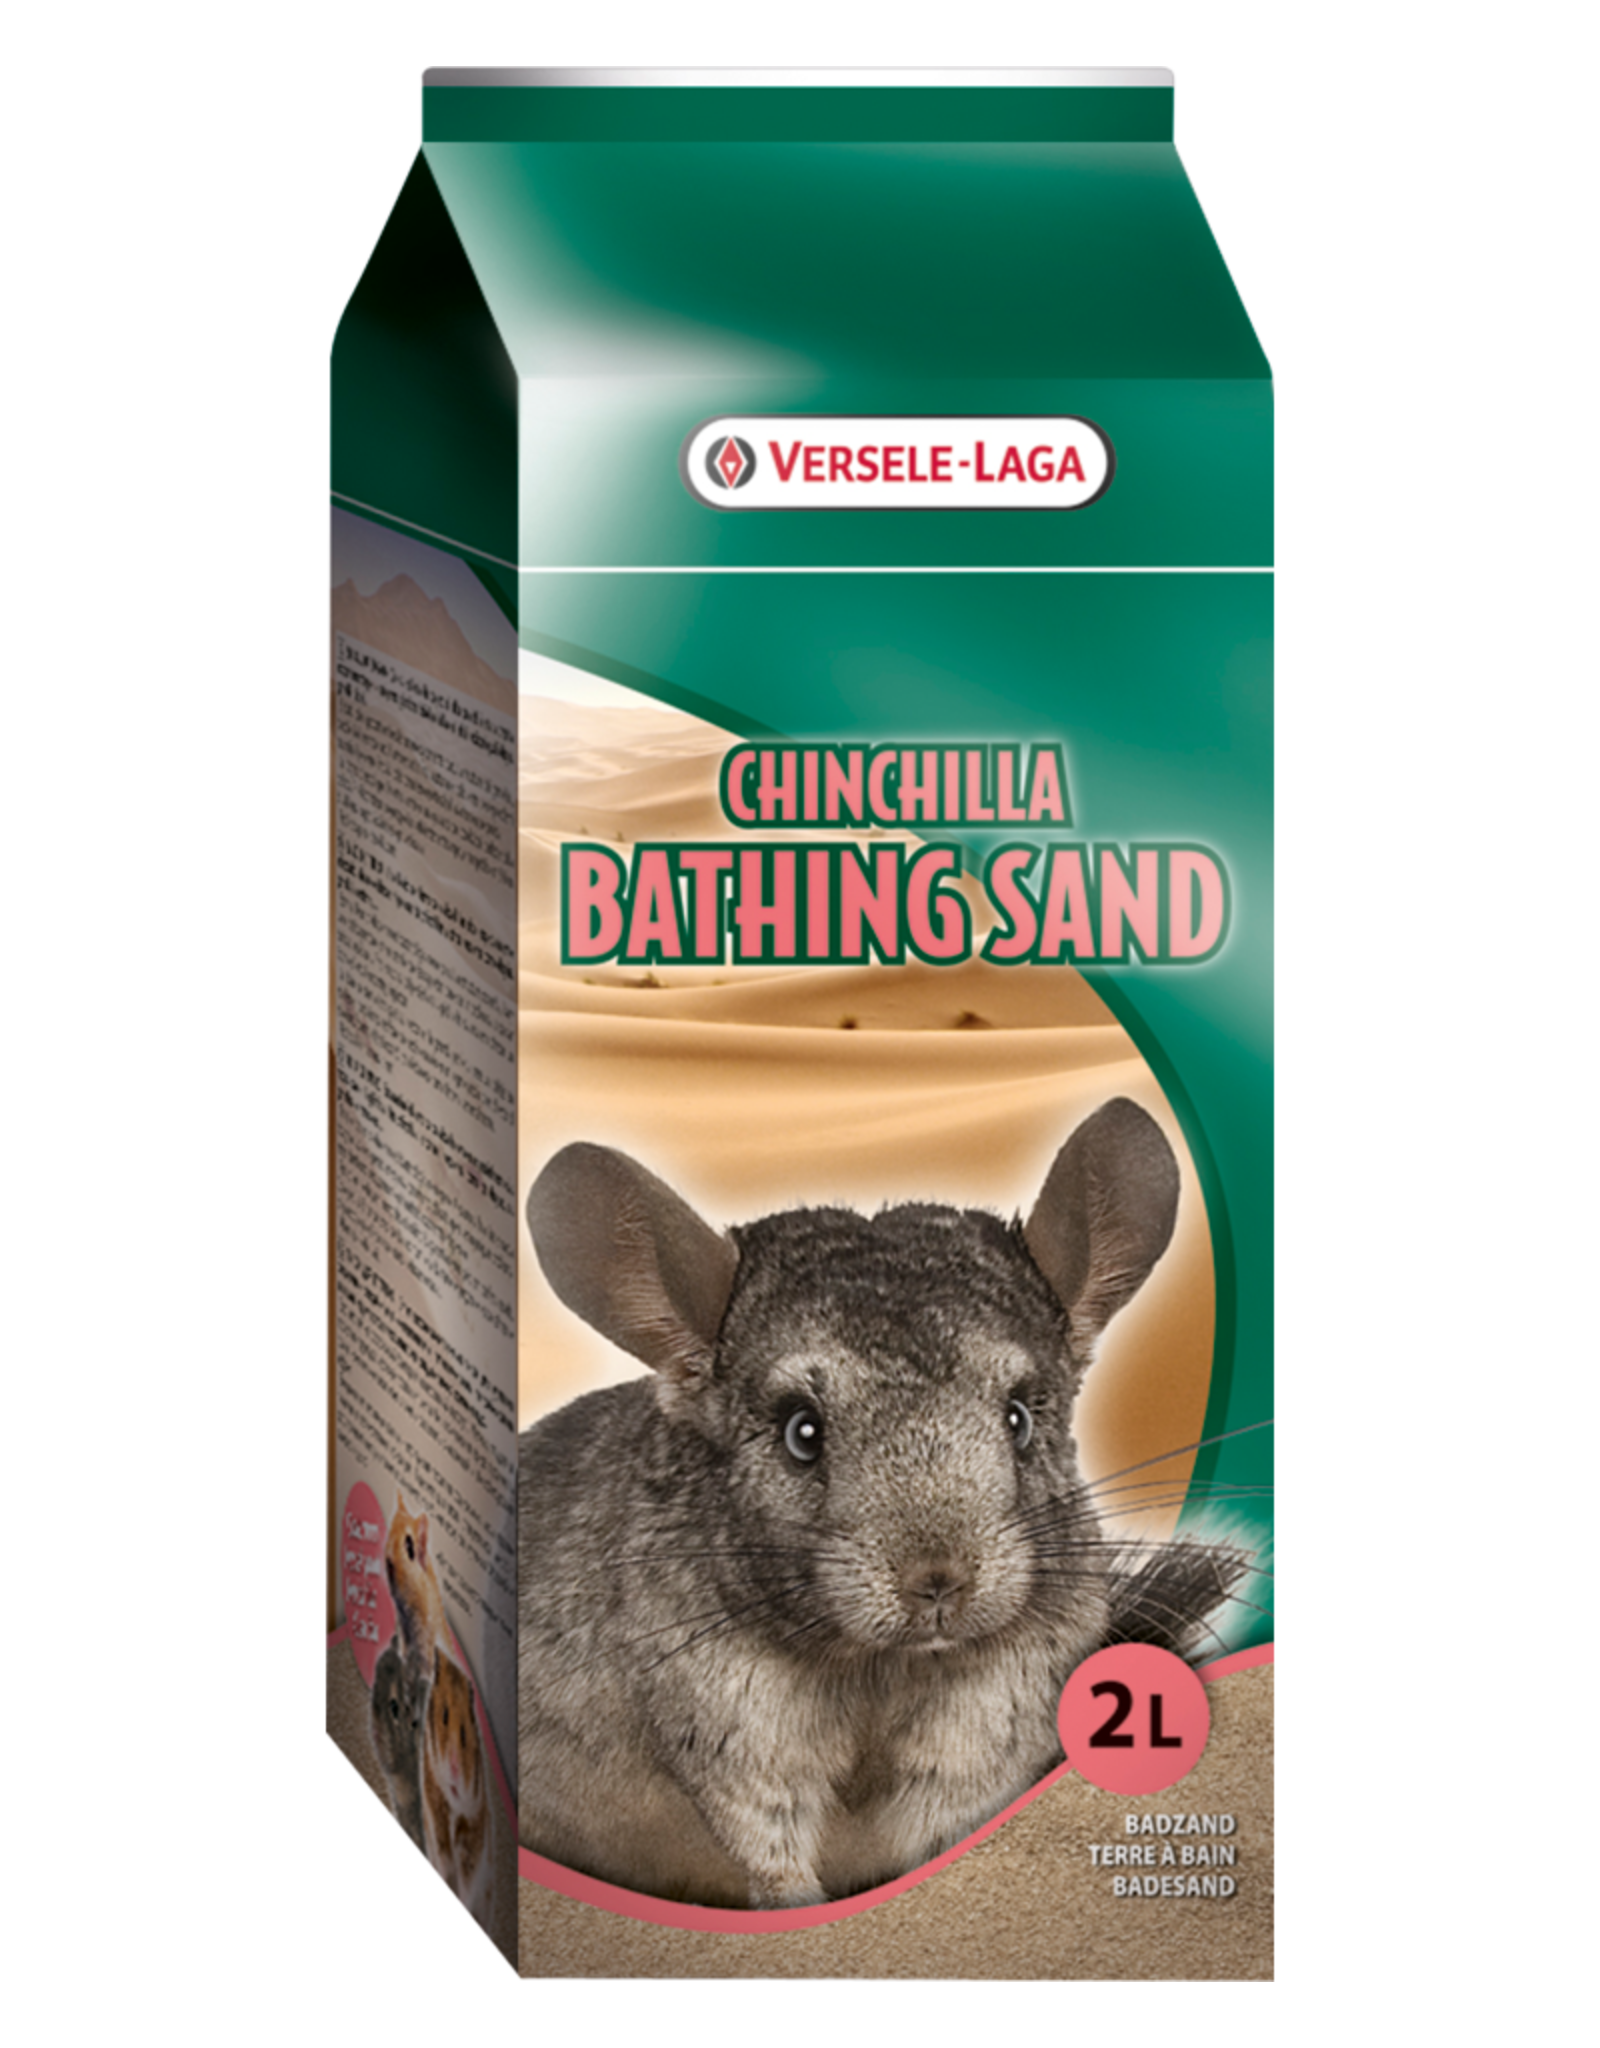 Versele-Laga Versele-Laga Chinchilla Bathing Sand 2L